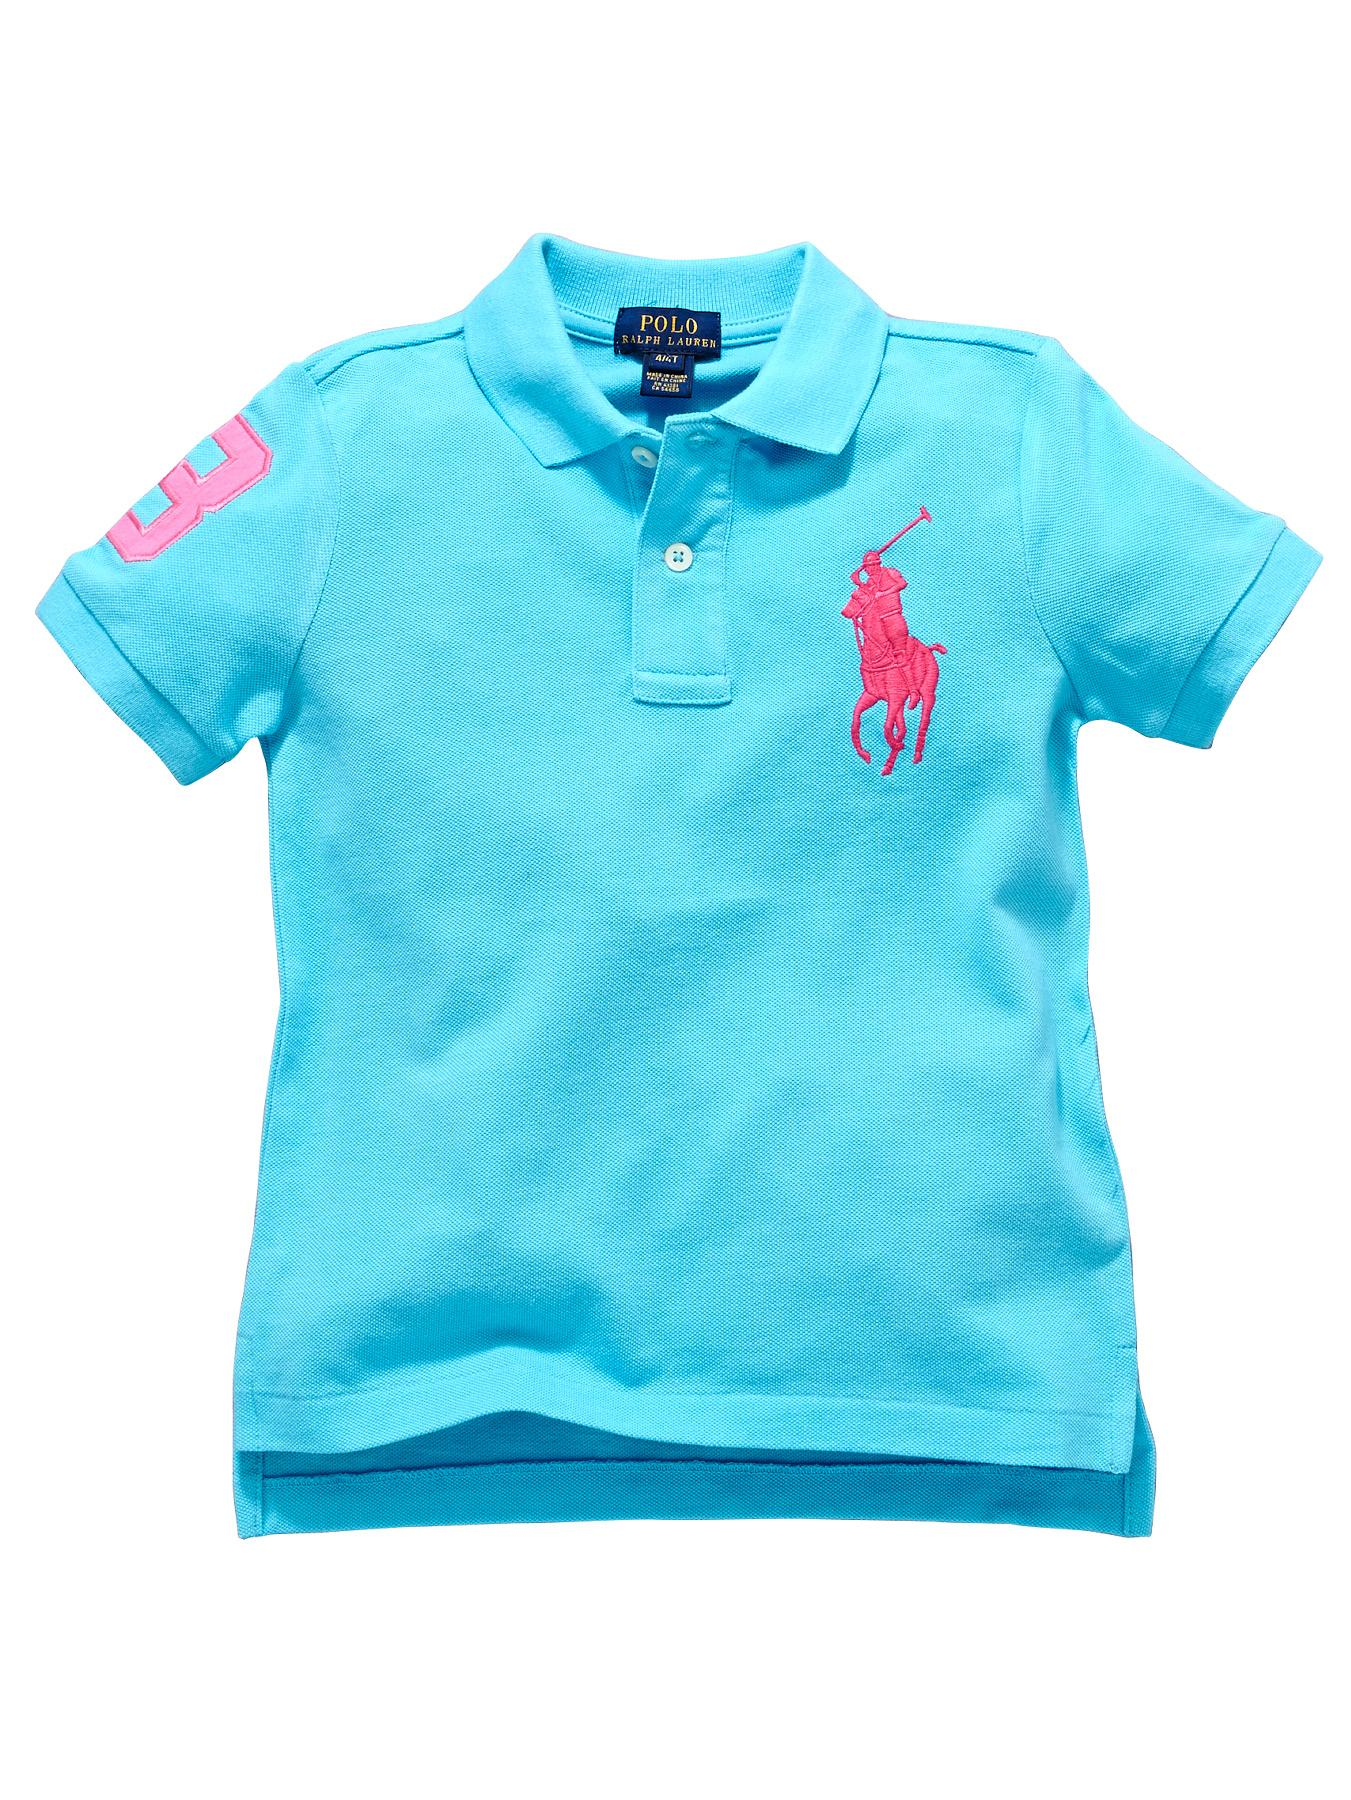 Ralph Lauren Short Sleeved Big Pony Polo Shirt - Blue, Blue